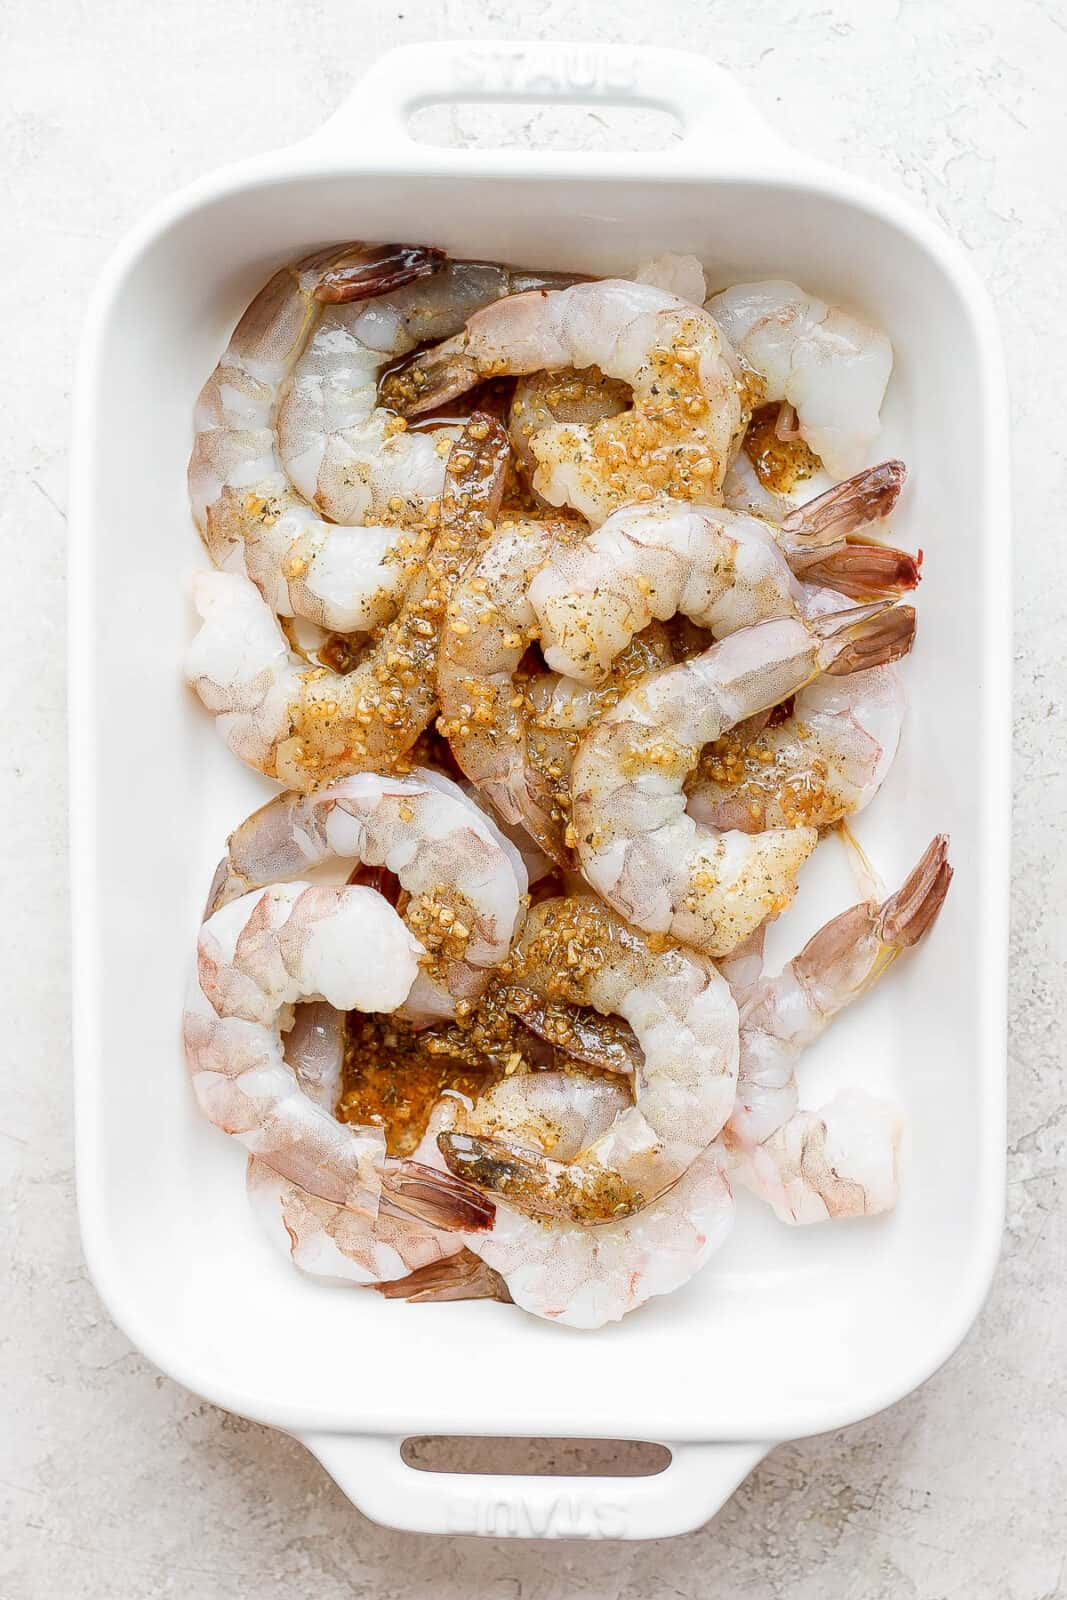 Shrimp in a pan with marinade on top.